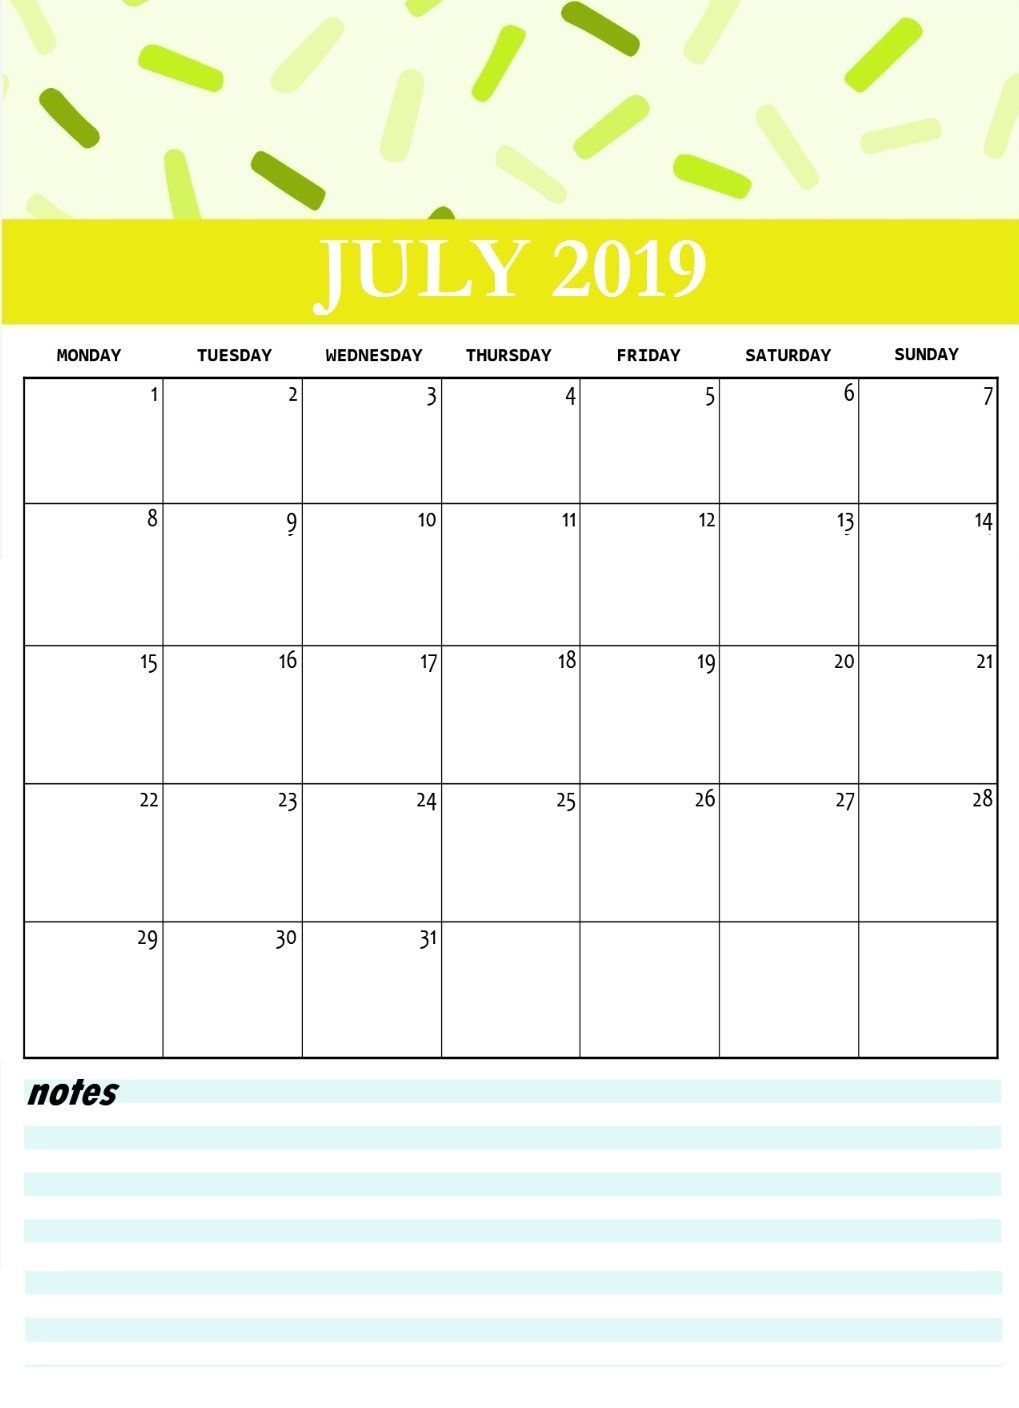 July 2019 Calendar Template With Notes Monthly Calendar Template